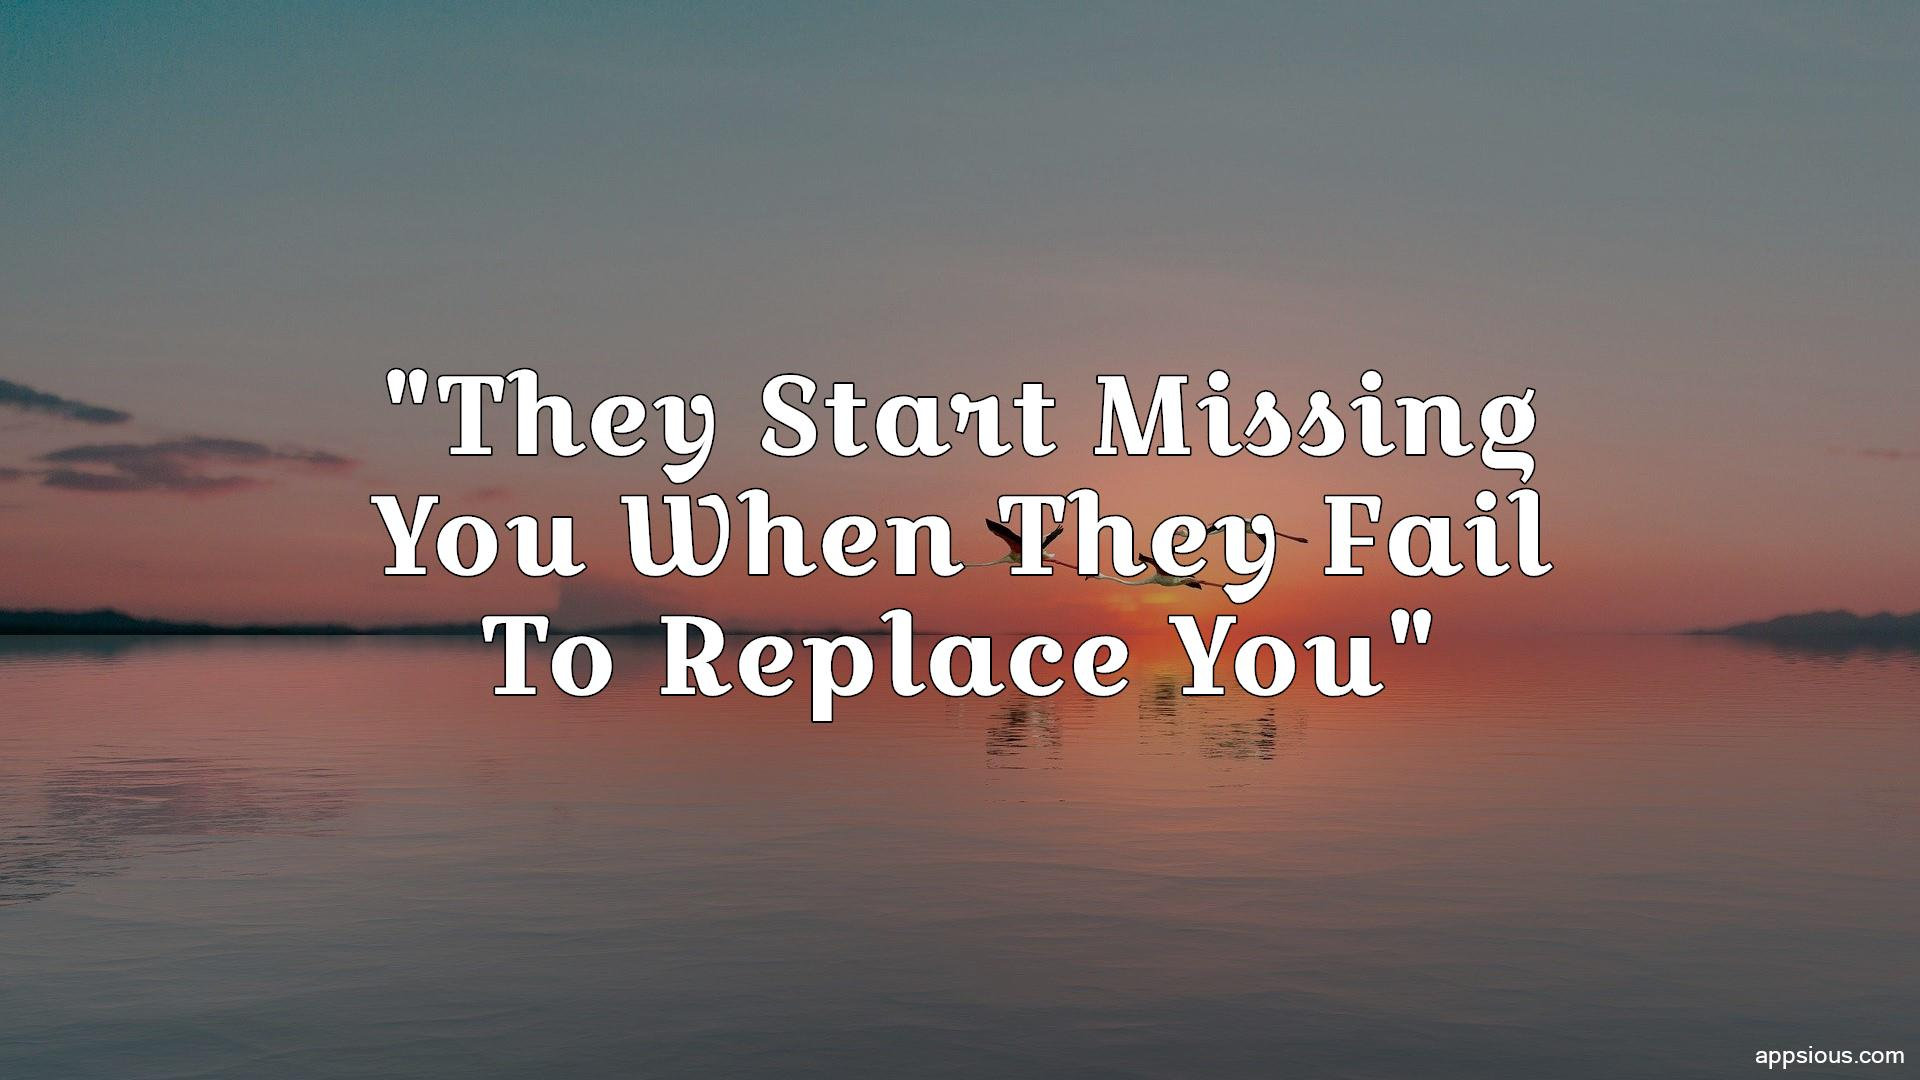 They Start Missing You When They Fail To Replace You